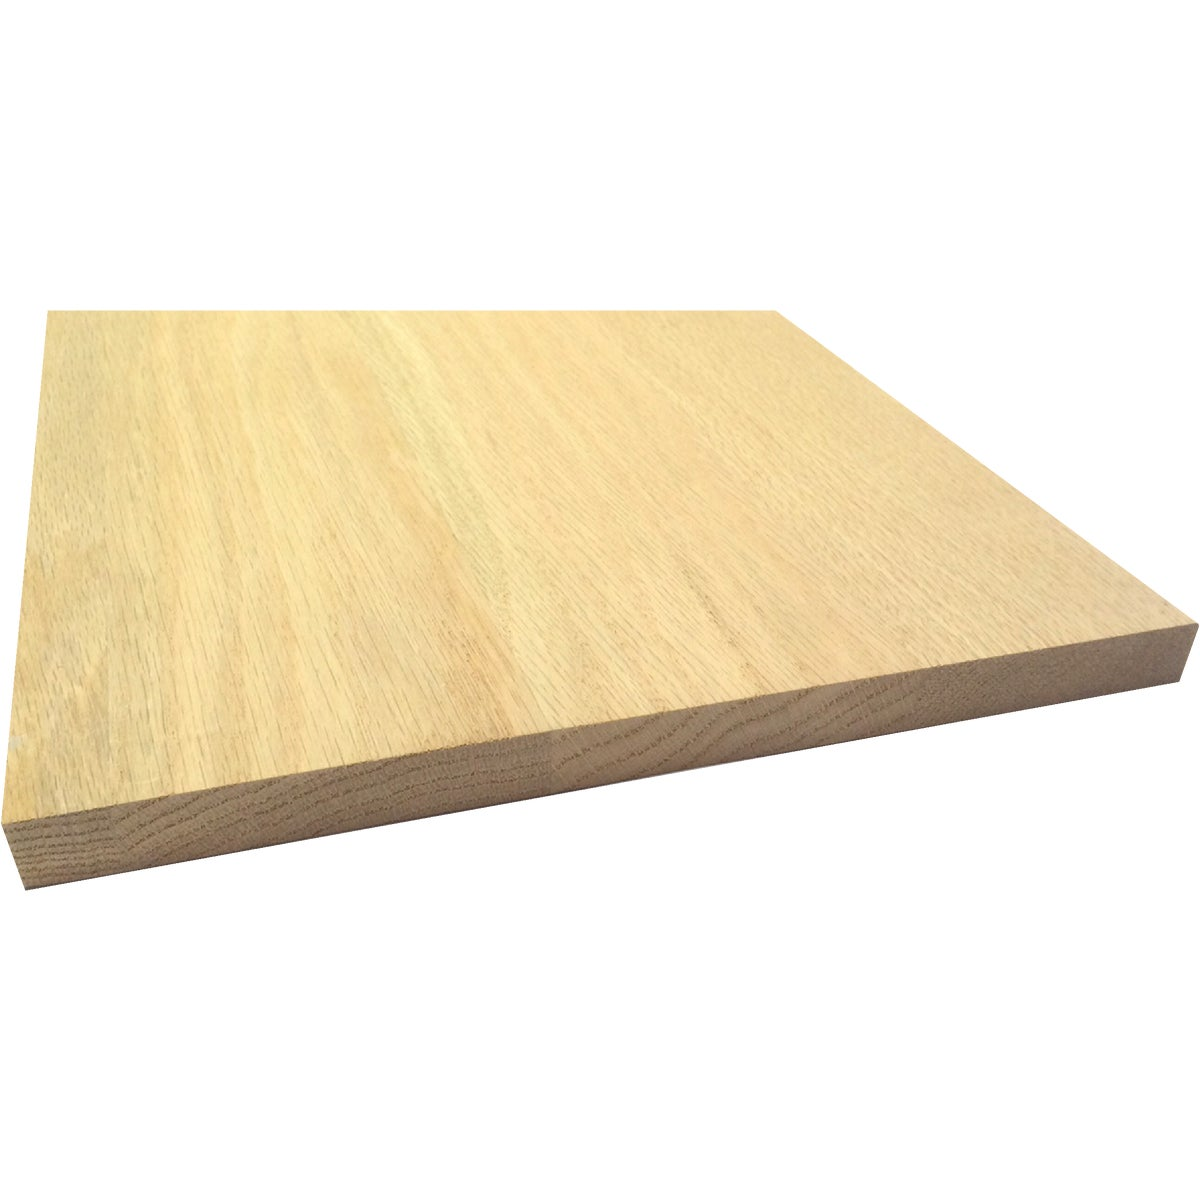 "1X12""X6' OAK BOARD - PB19546 by Waddell Mfg Company"